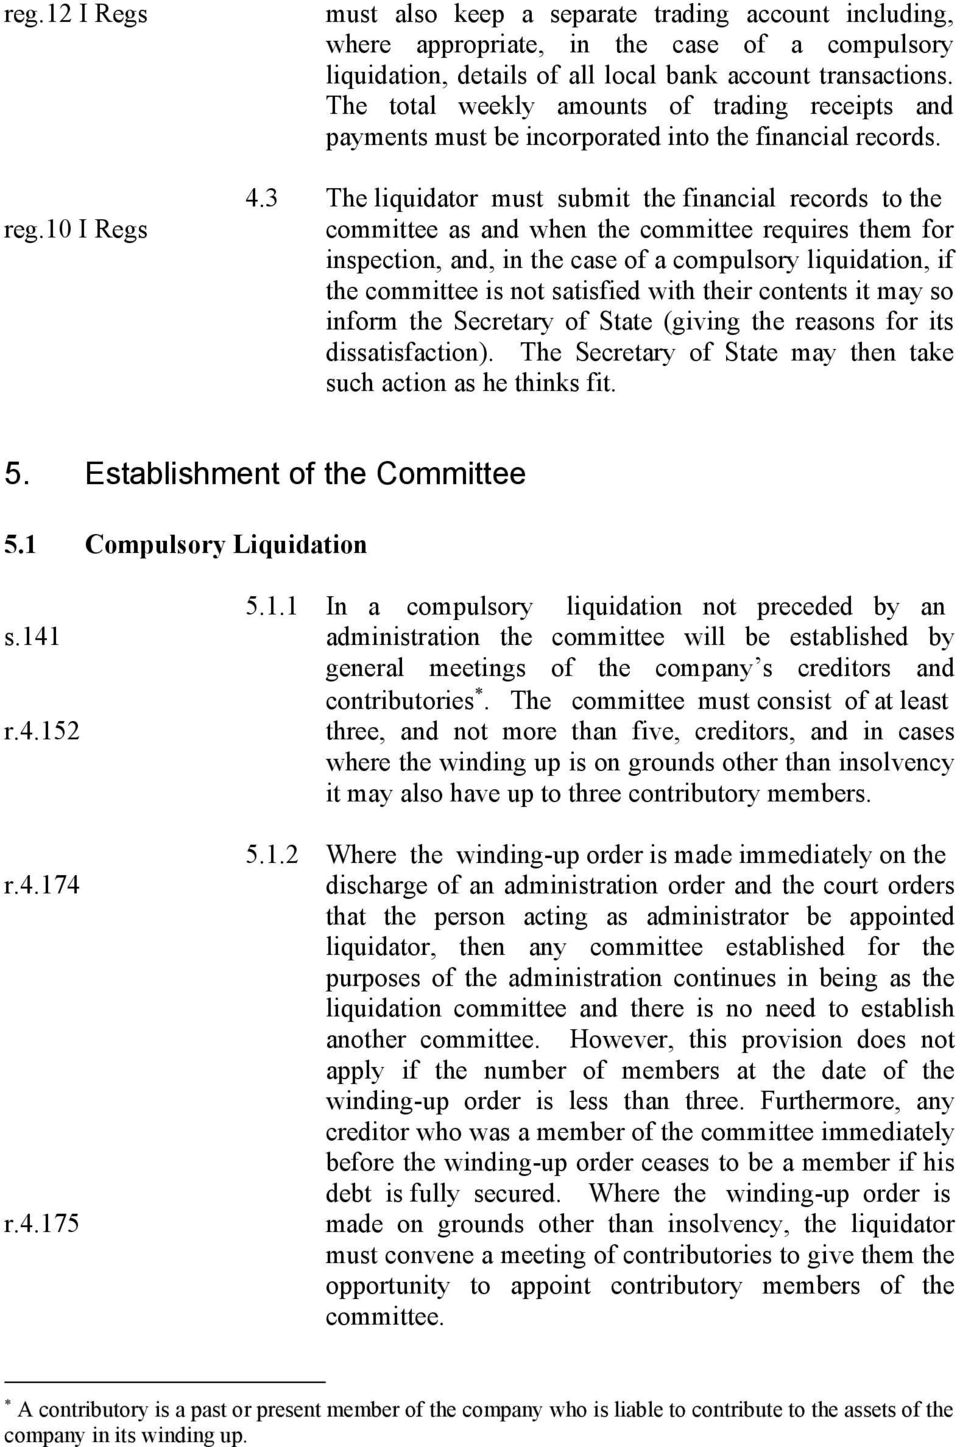 3 The liquidator must submit the financial records to the committee as and when the committee requires them for inspection, and, in the case of a compulsory liquidation, if the committee is not